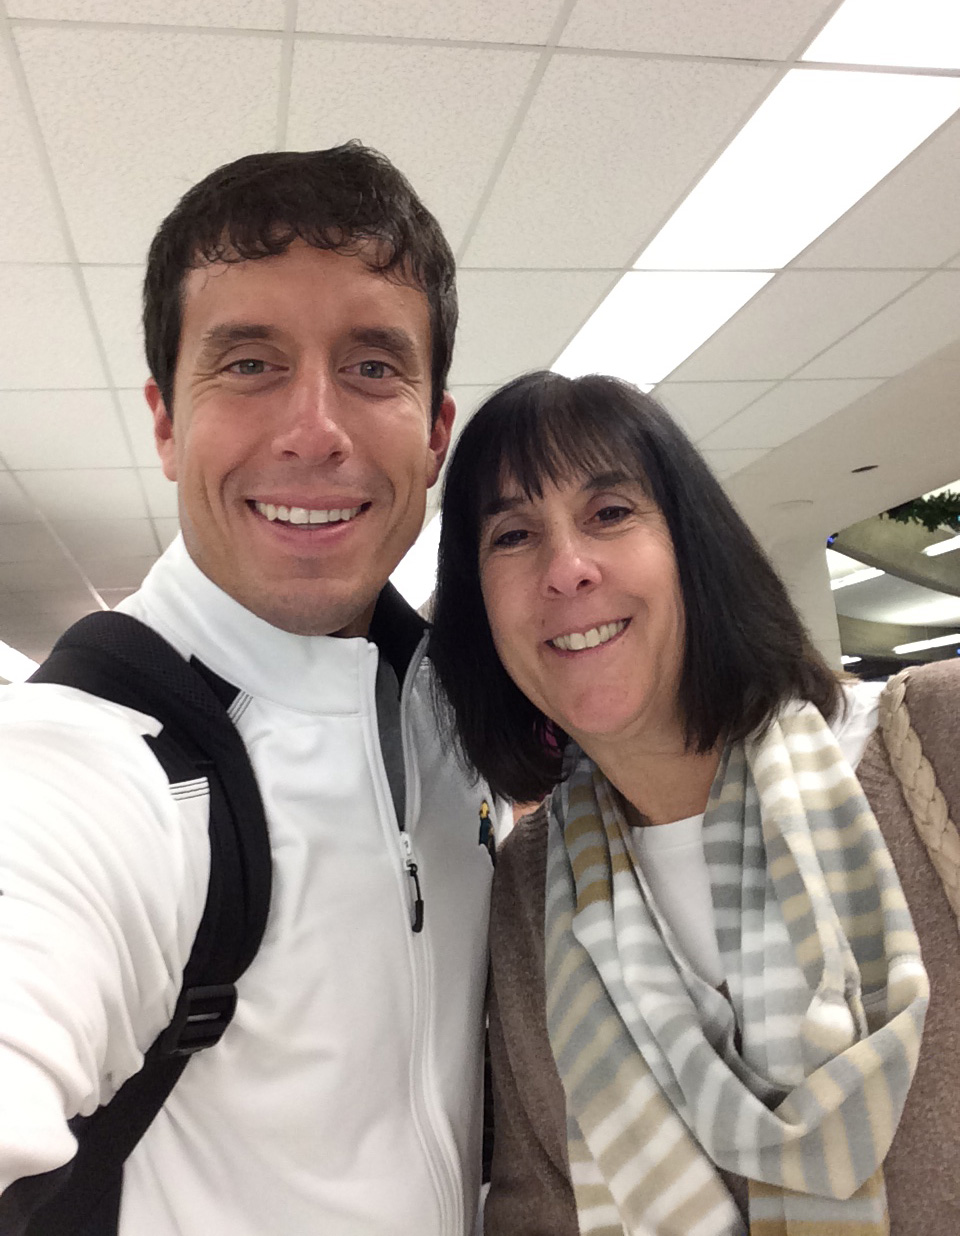 My mom and I reunited in the airport.